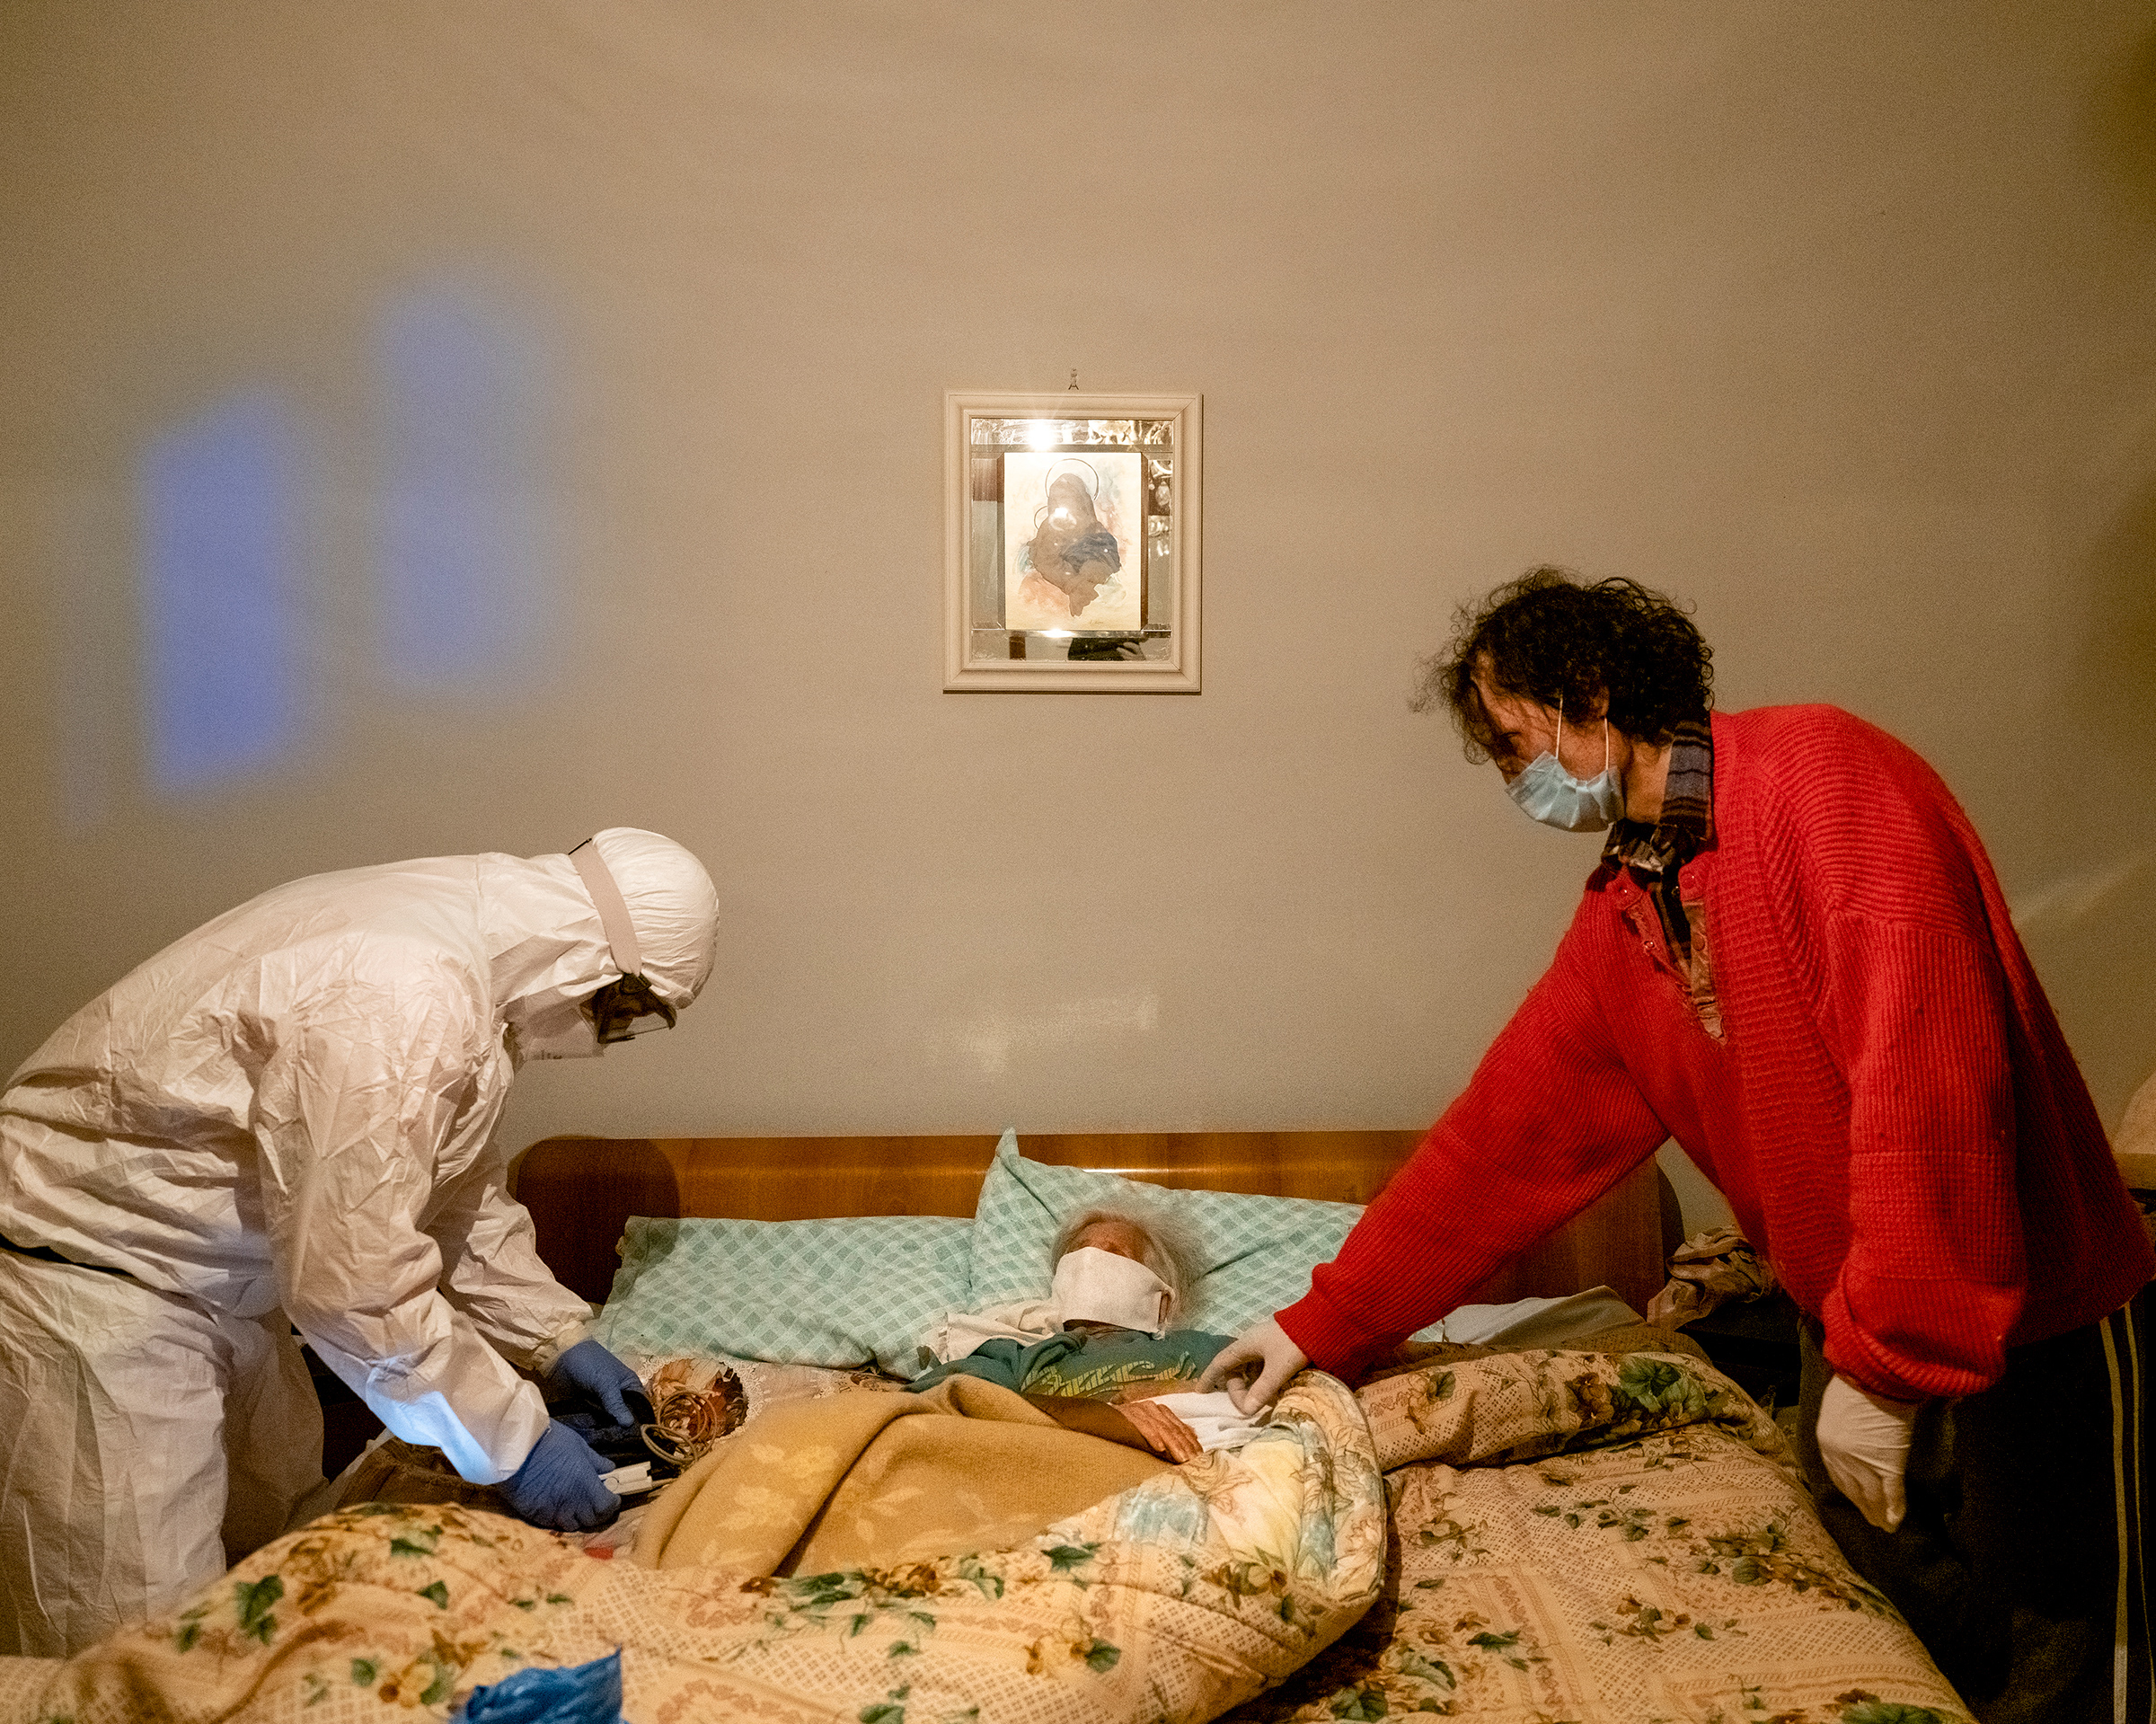 A health worker checks an elderly woman's oxygen level after receiving a call about a suspected COVID-19 case in the northern Italian province of Bergamo.